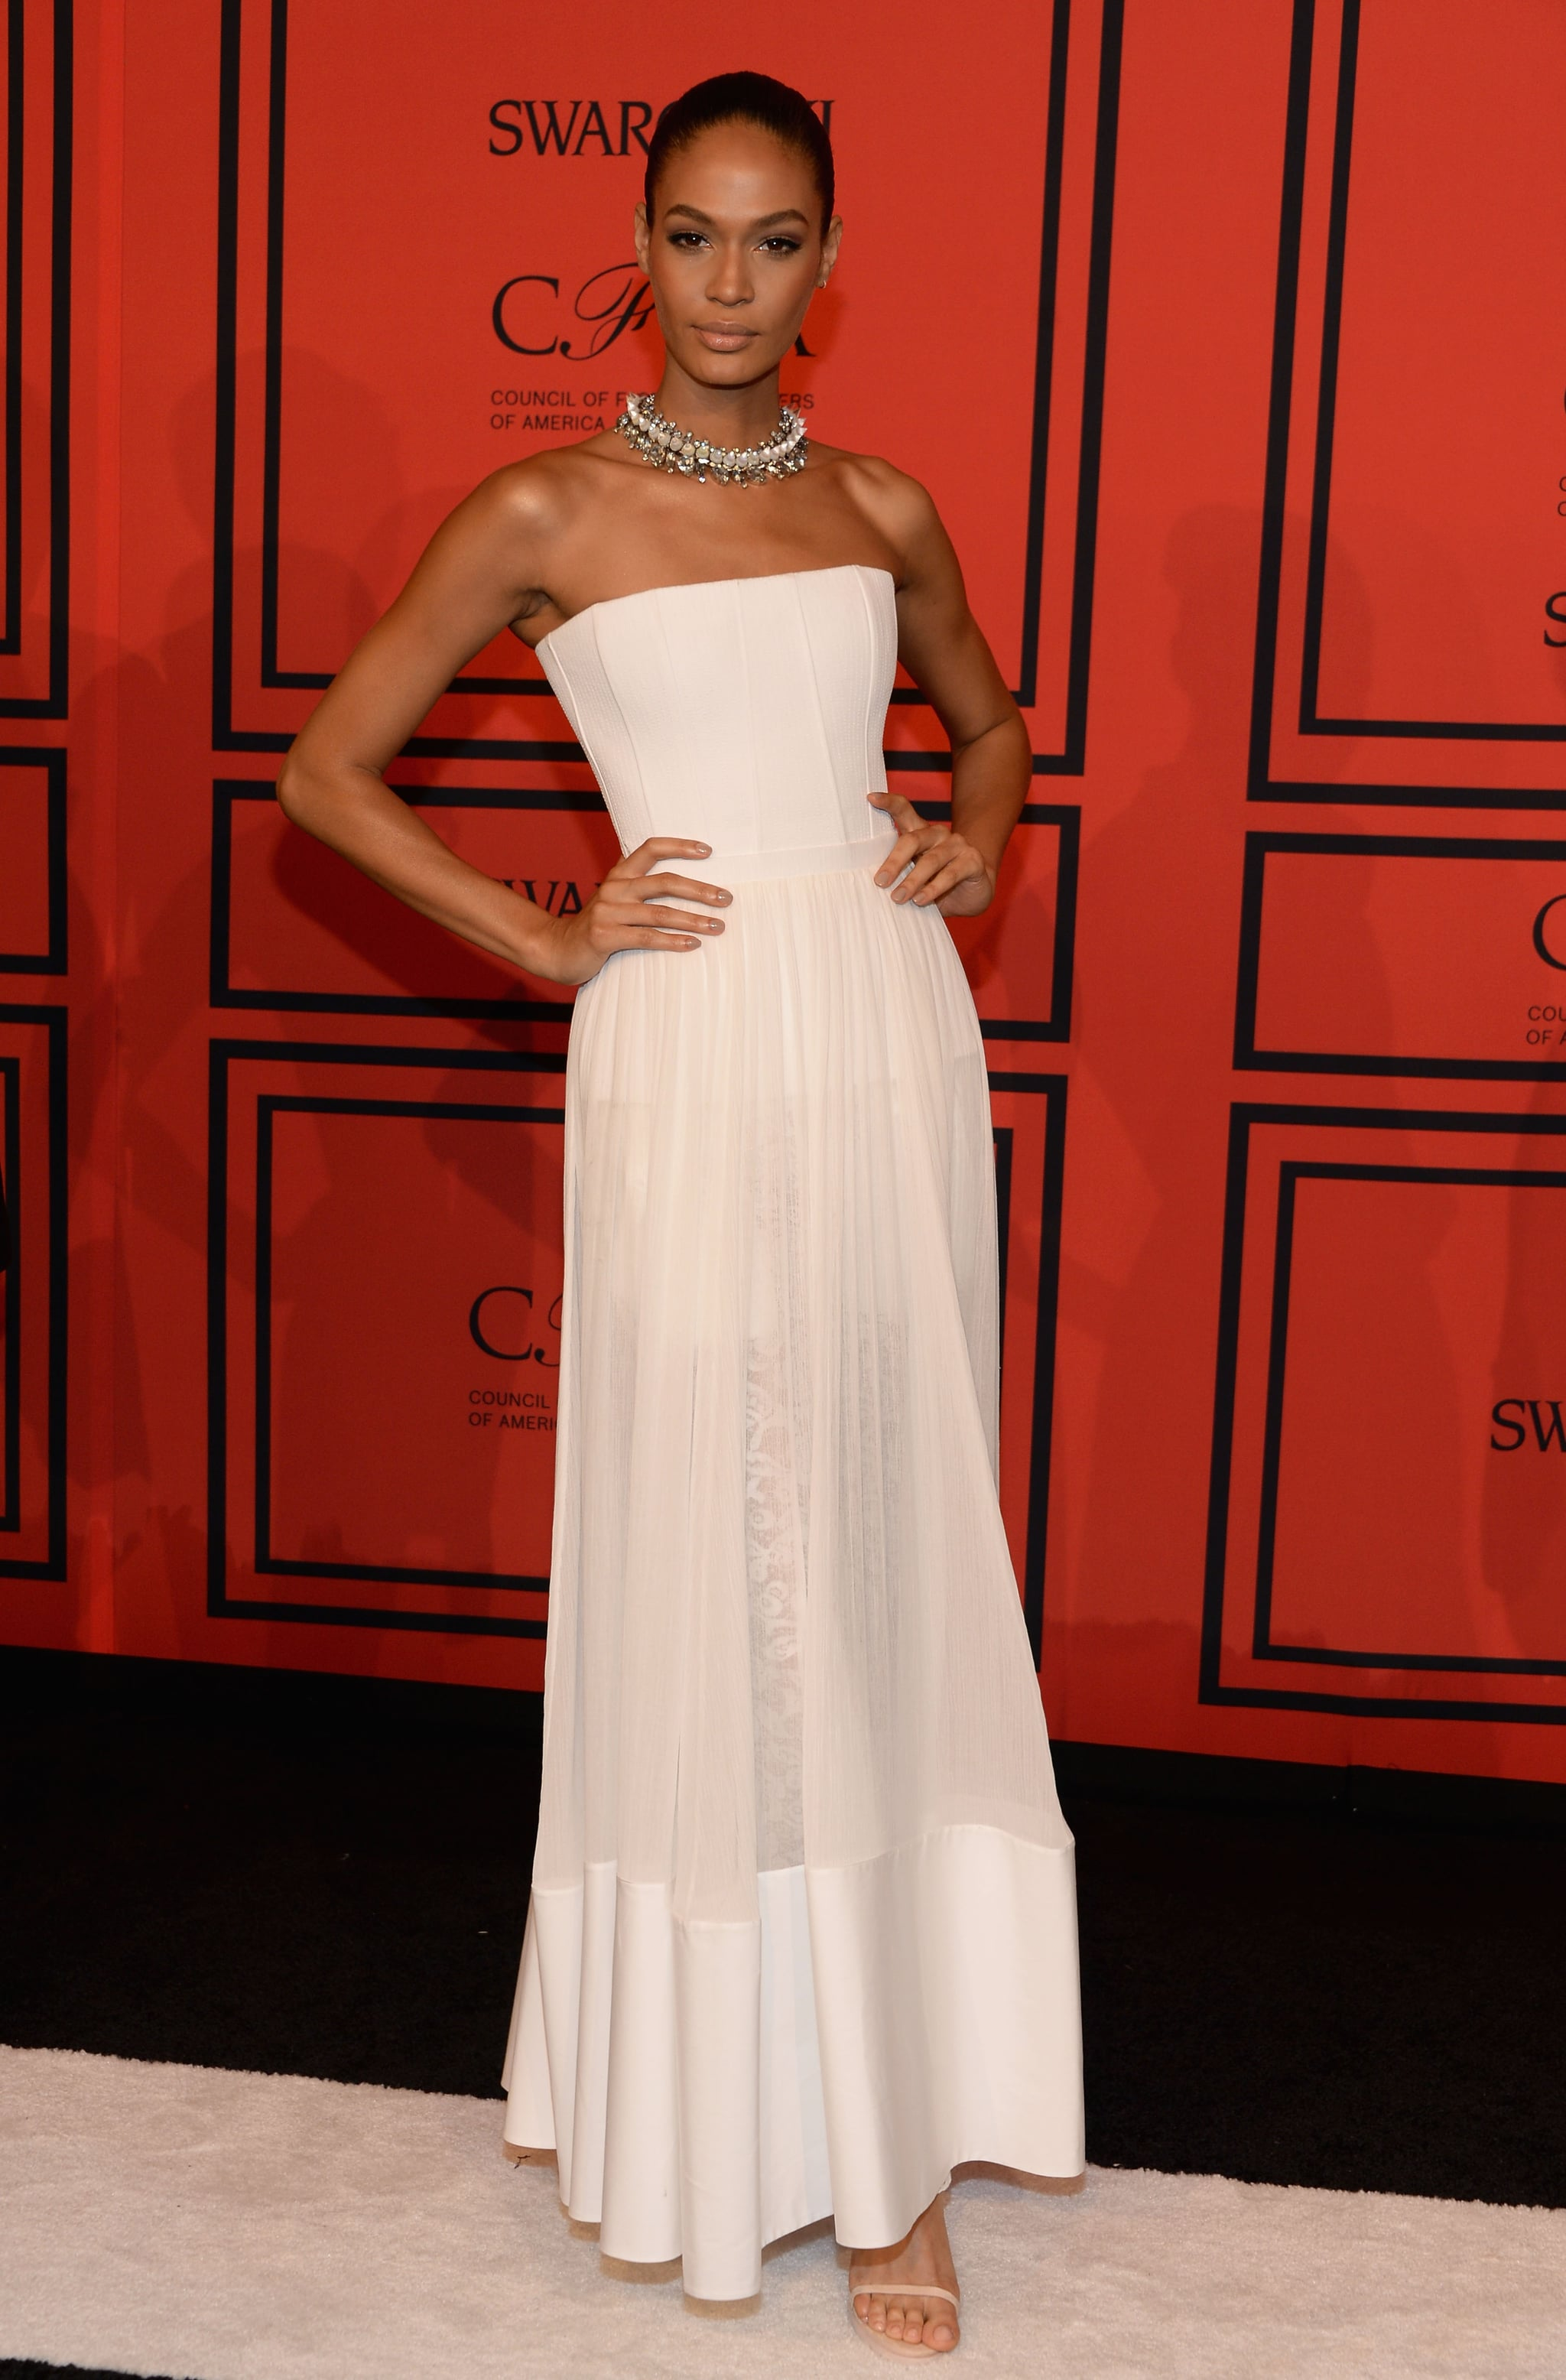 Joan Smalls, in Givenchy by Riccardo Tisci Resort 2014, at the 2013 CFDA Awards.